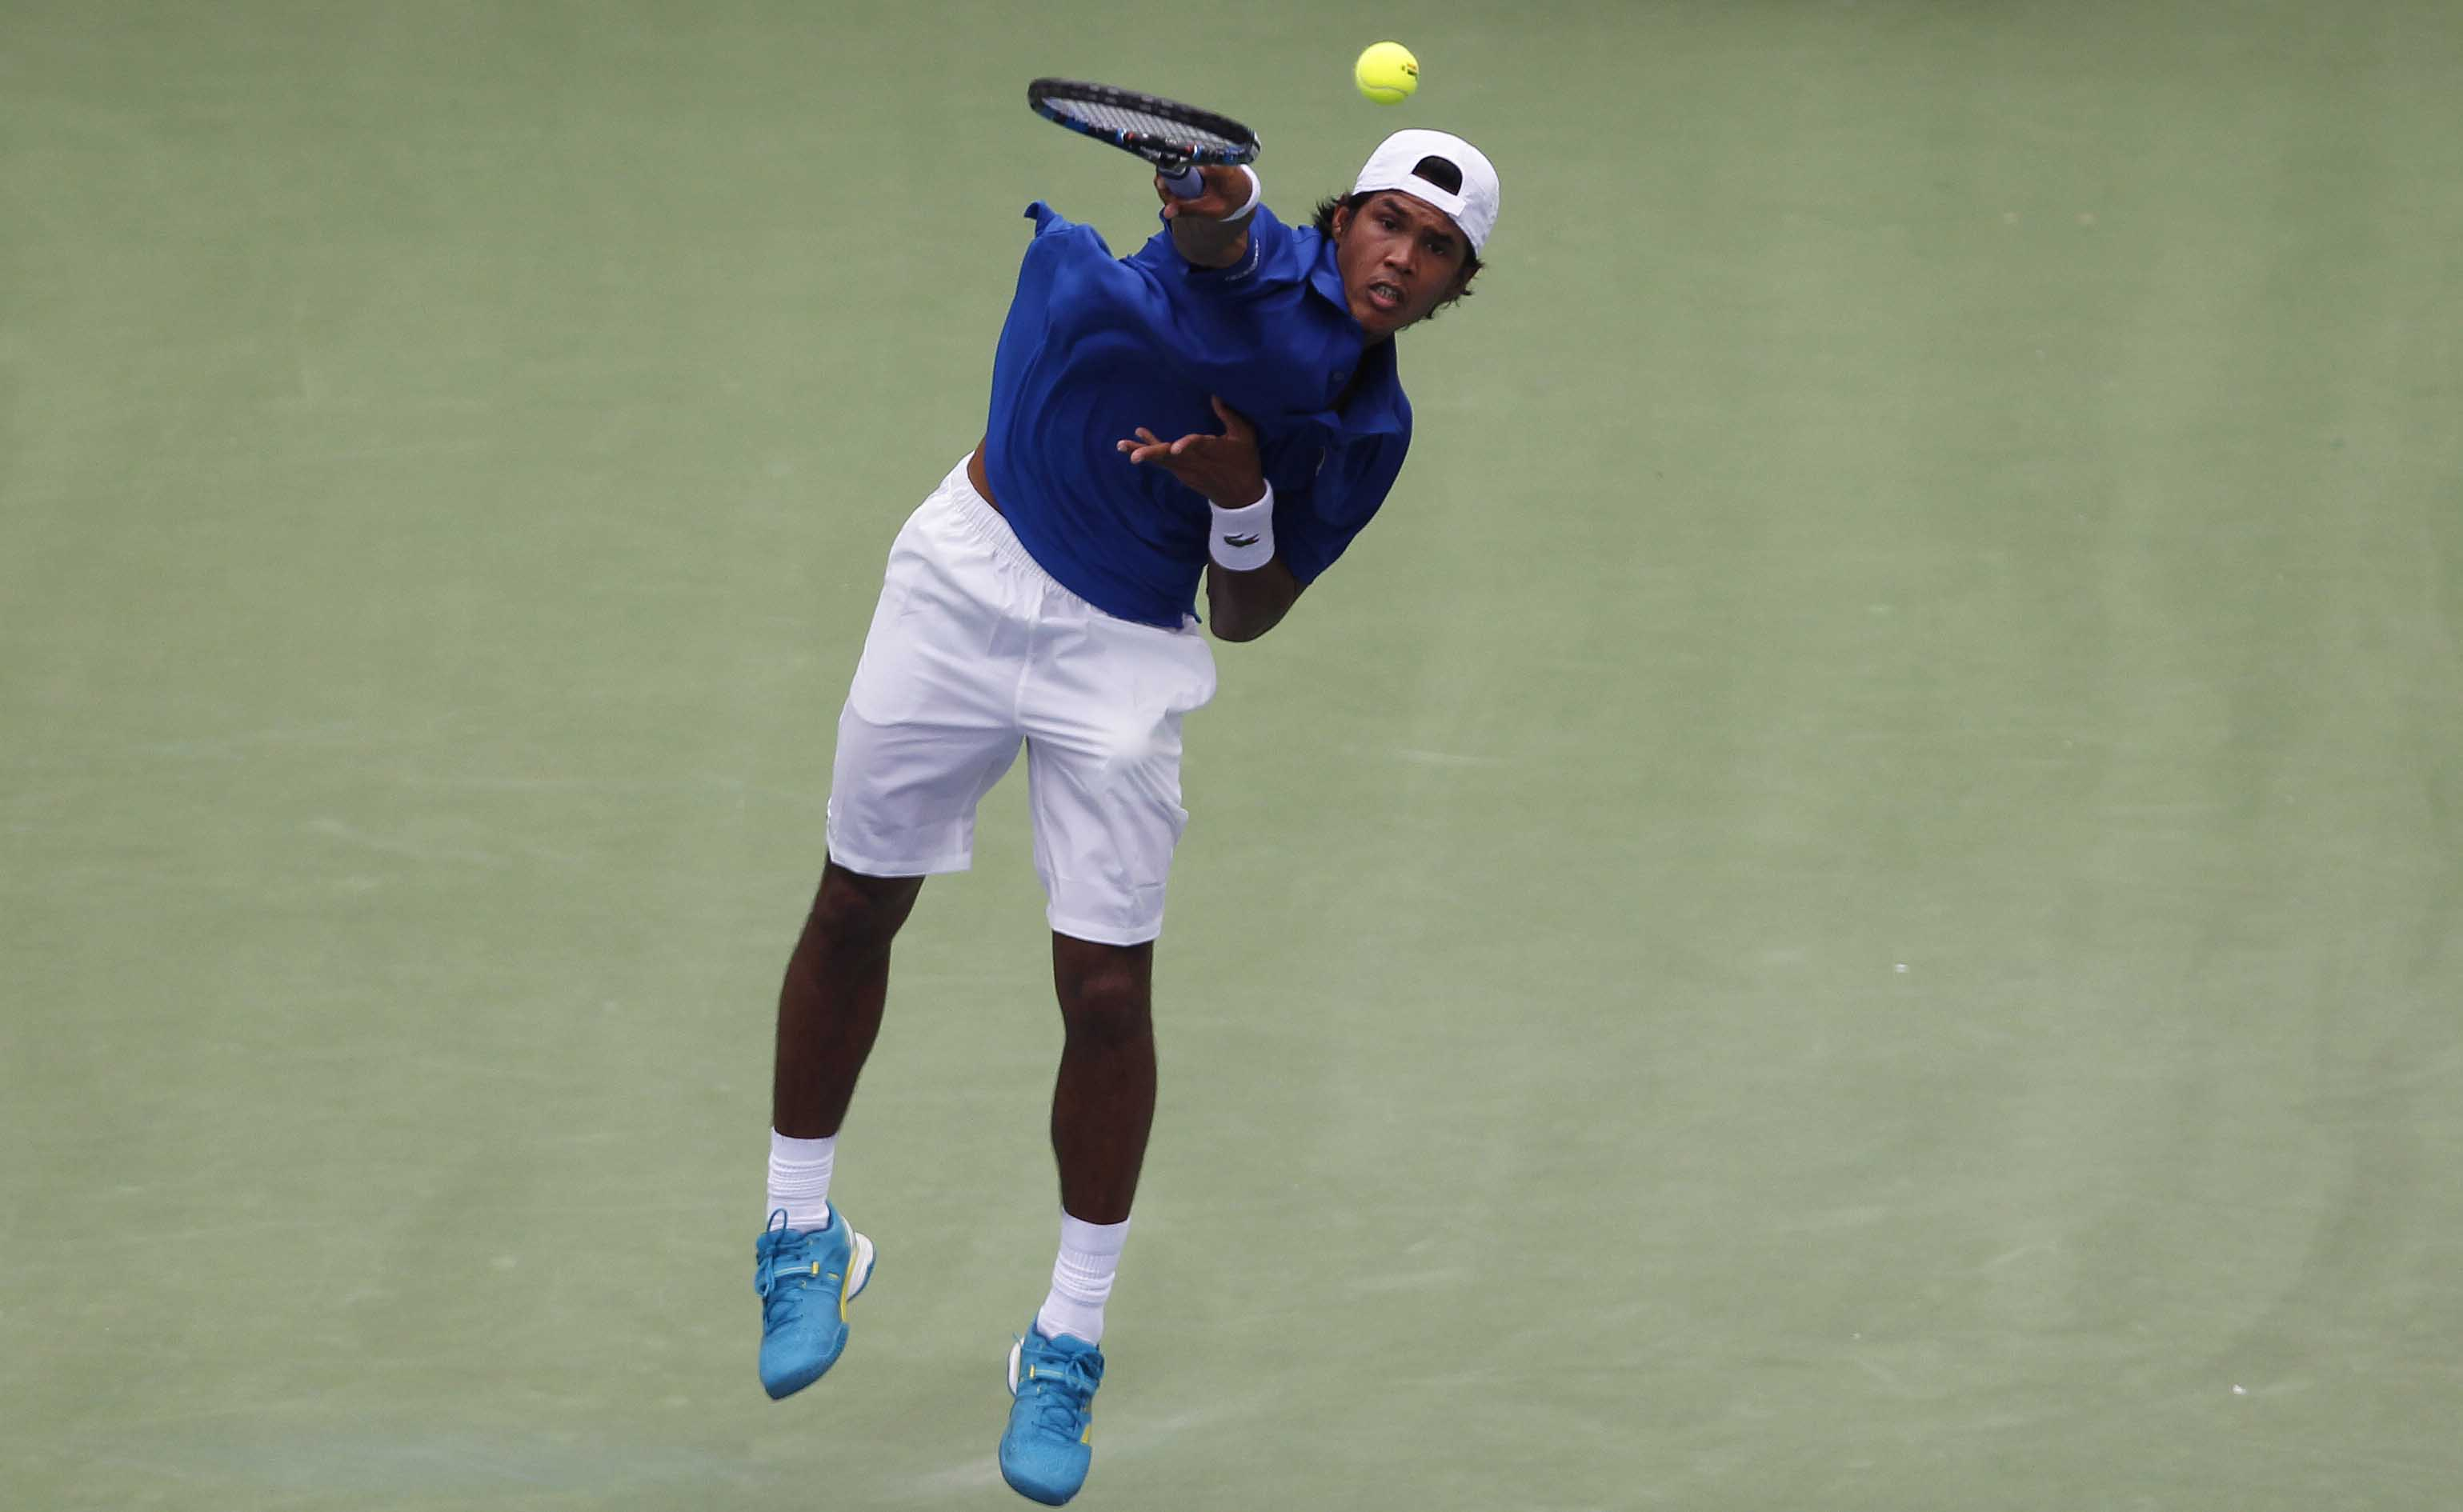 Davis Cup World Group Play-Off